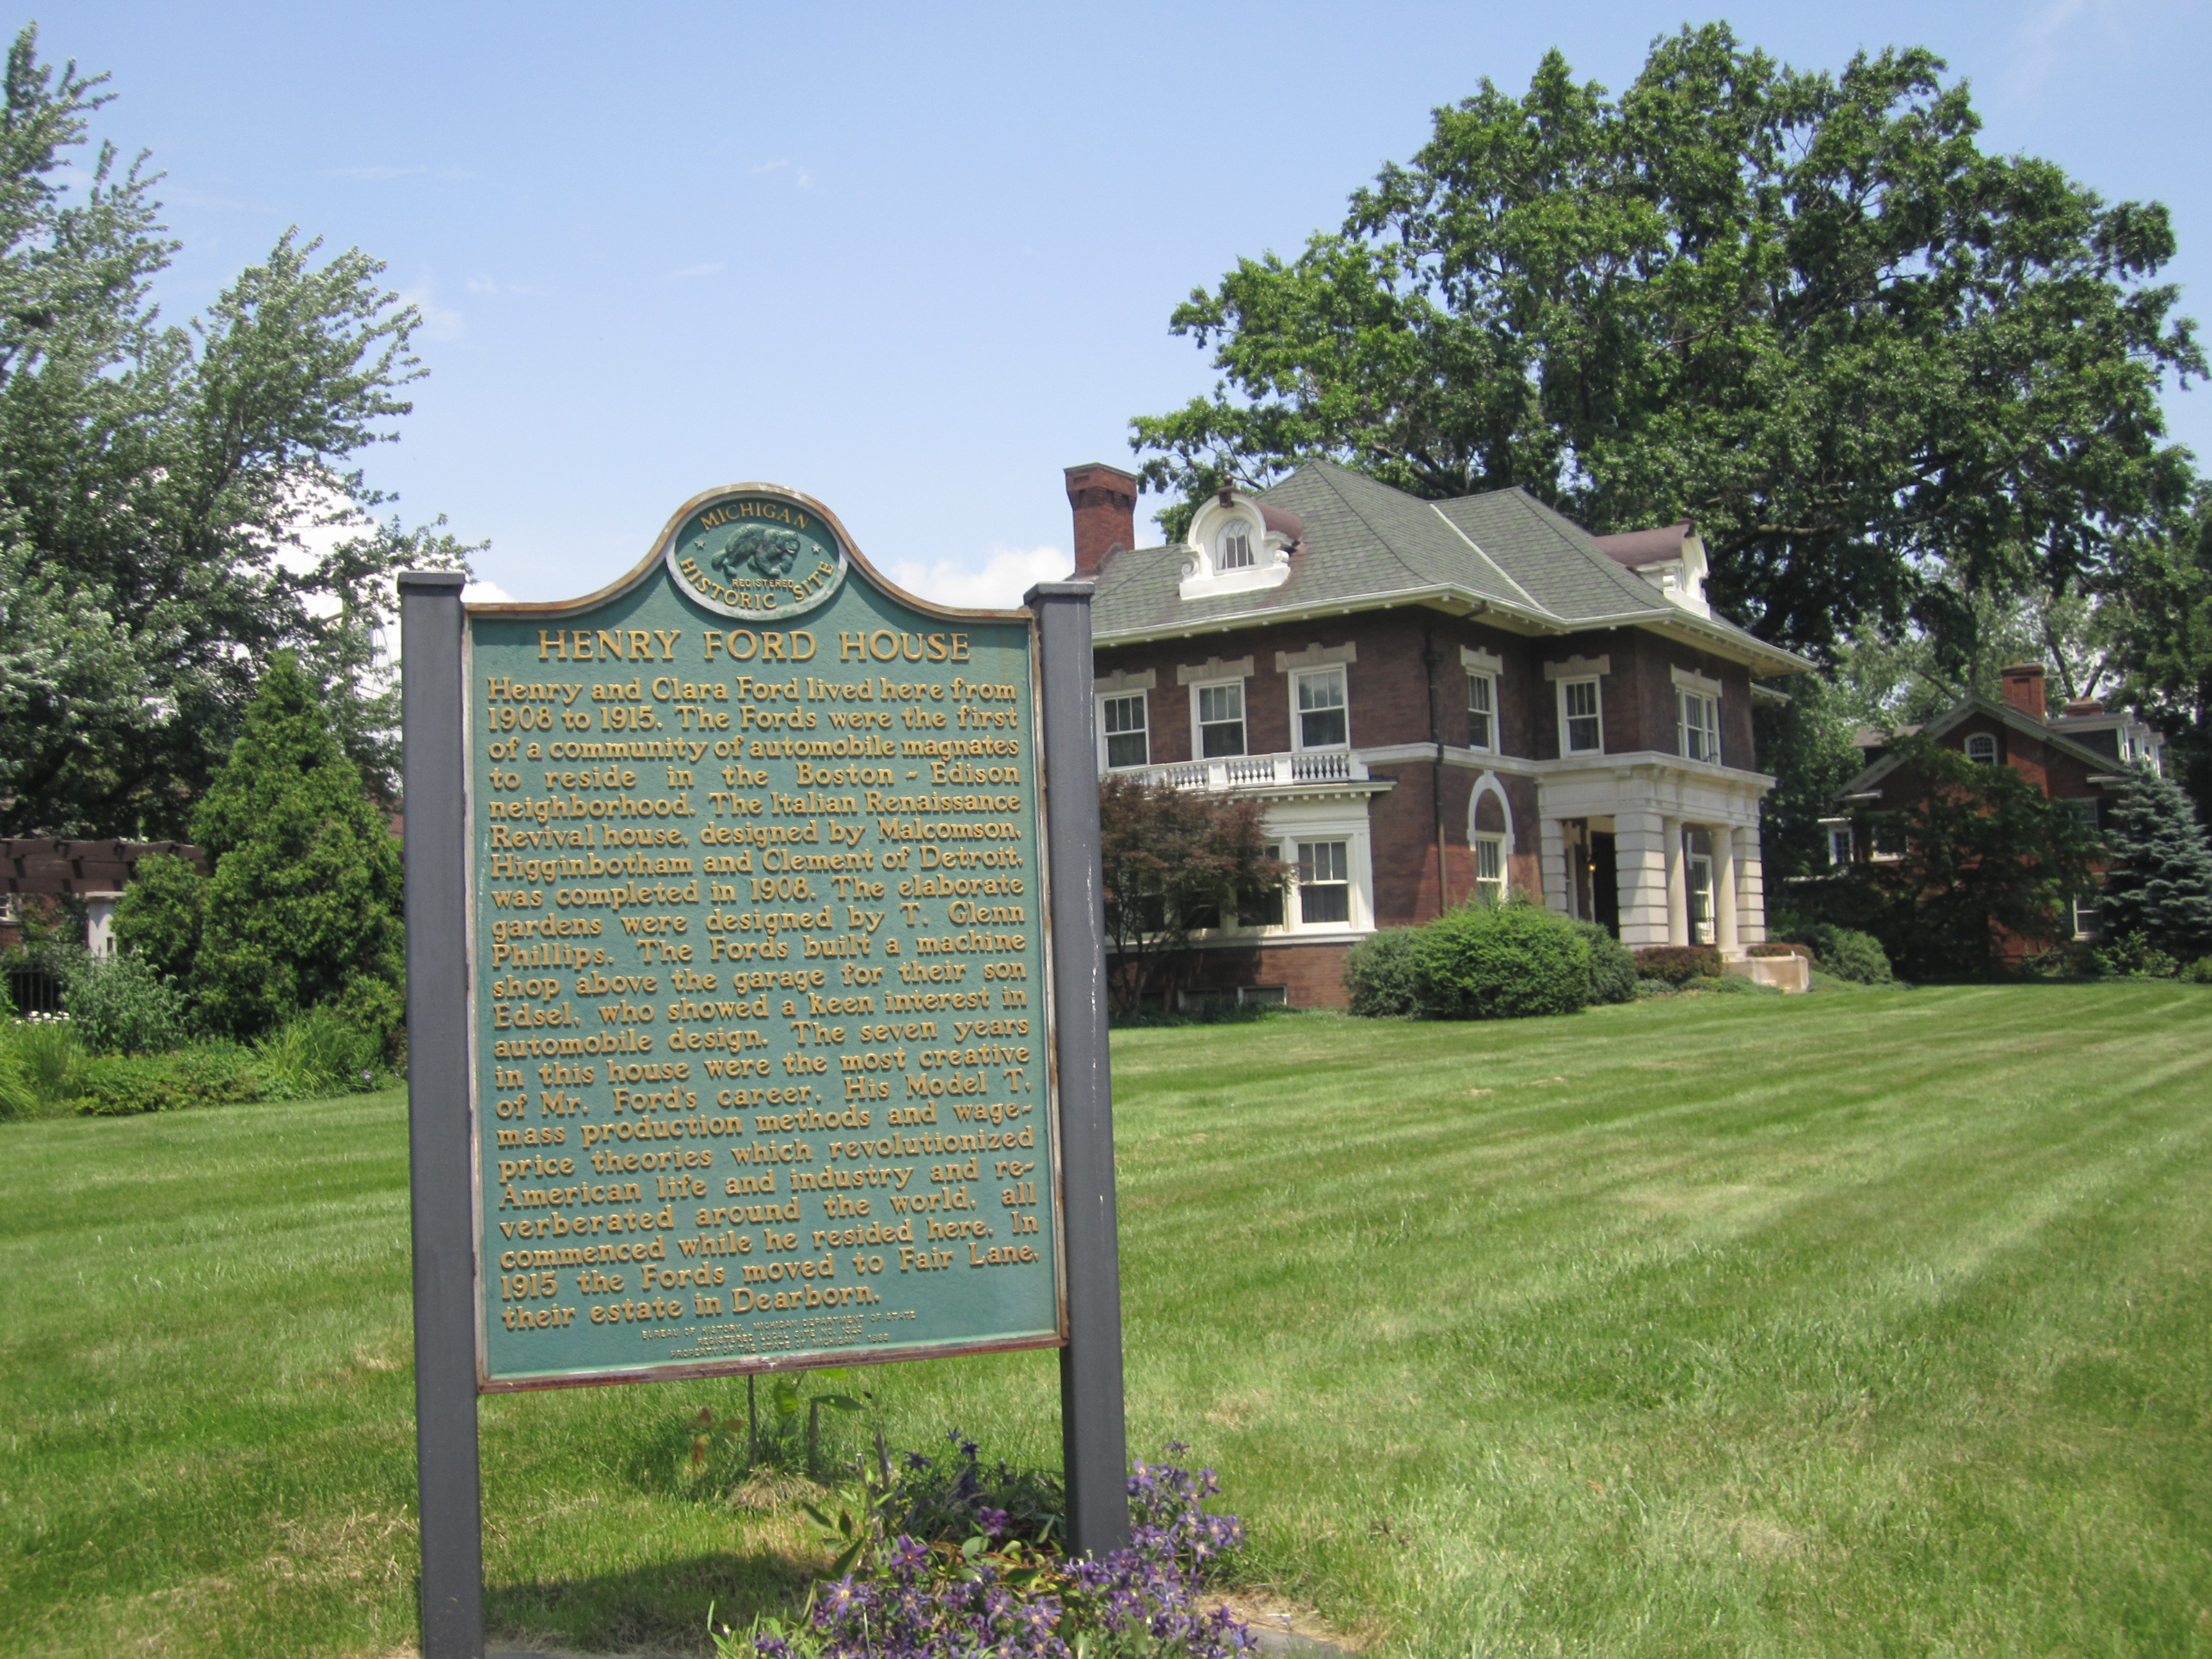 Henry Ford House